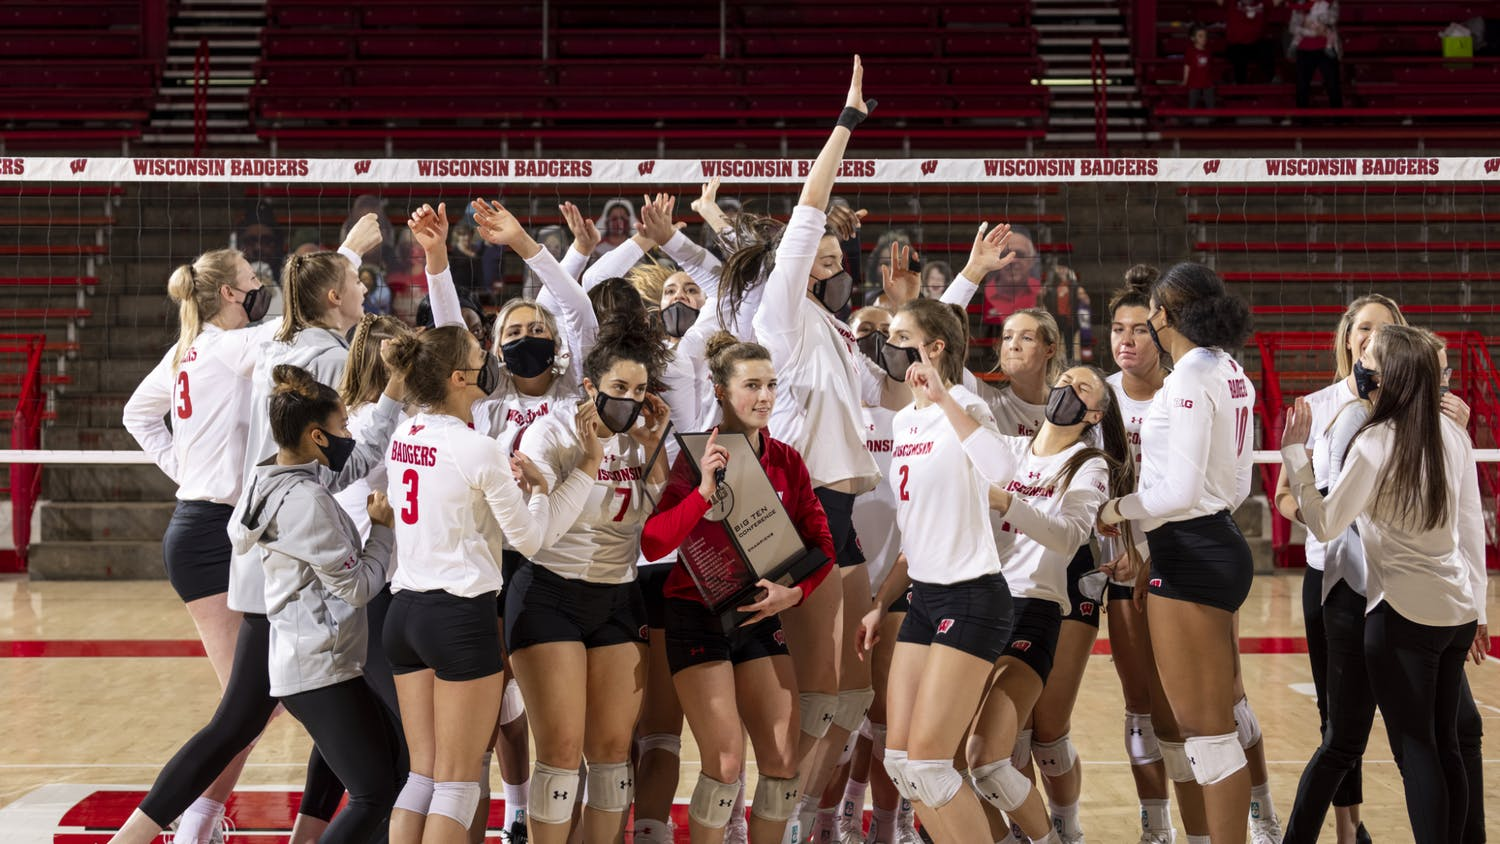 Photo of the Badger volleyball team celebrating their Big 10 championship.